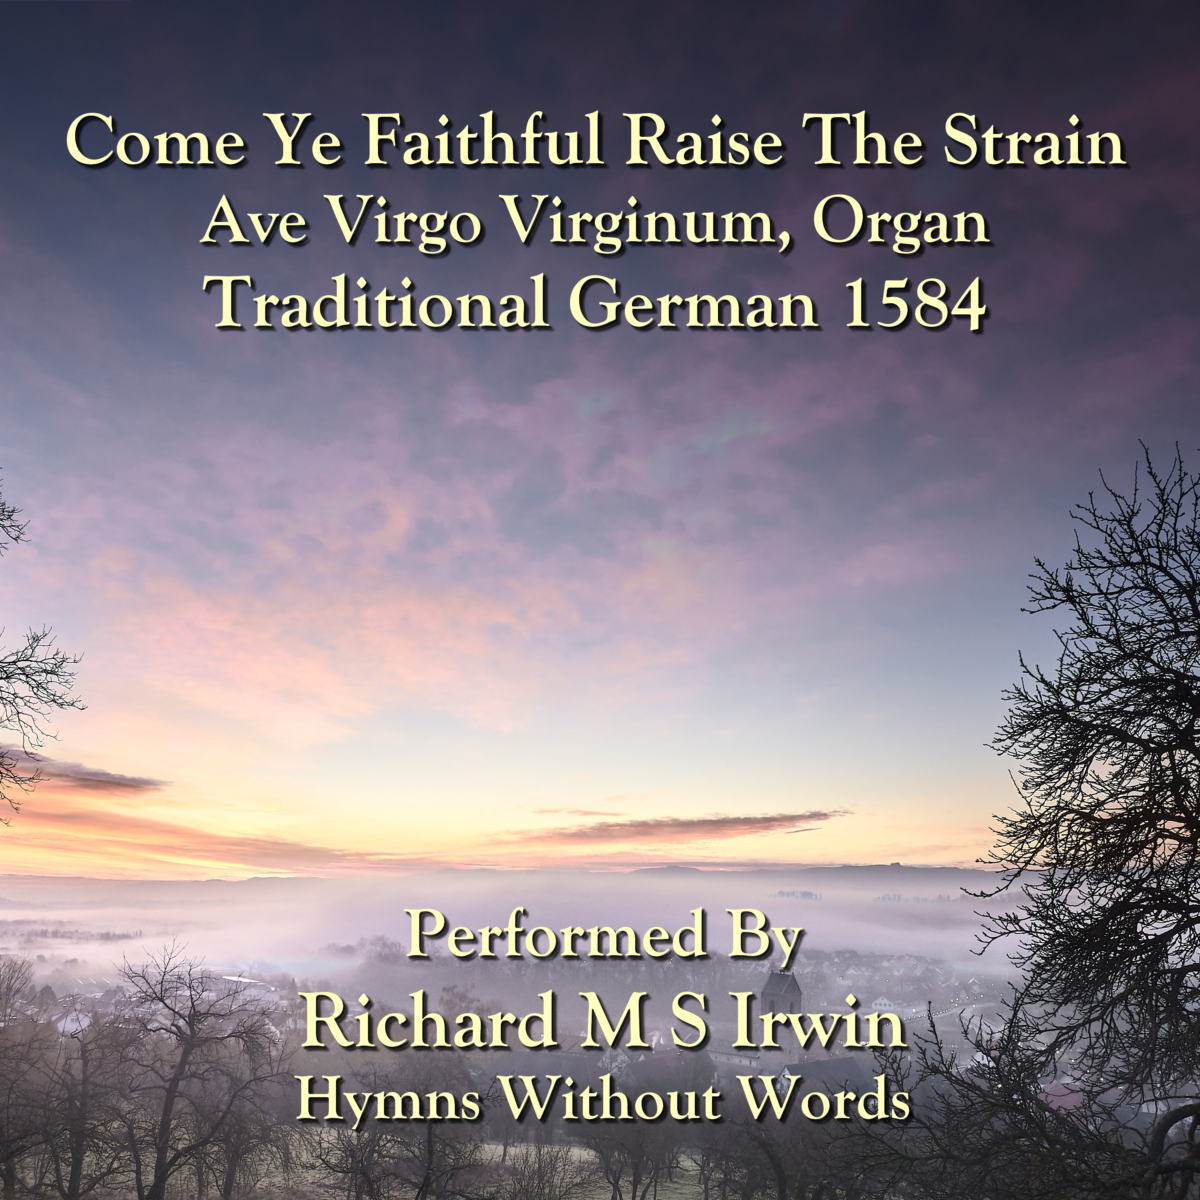 Come Ye Faithful Raise The Strain (Ave Virgo Virginum, Organ, 4 Verses)